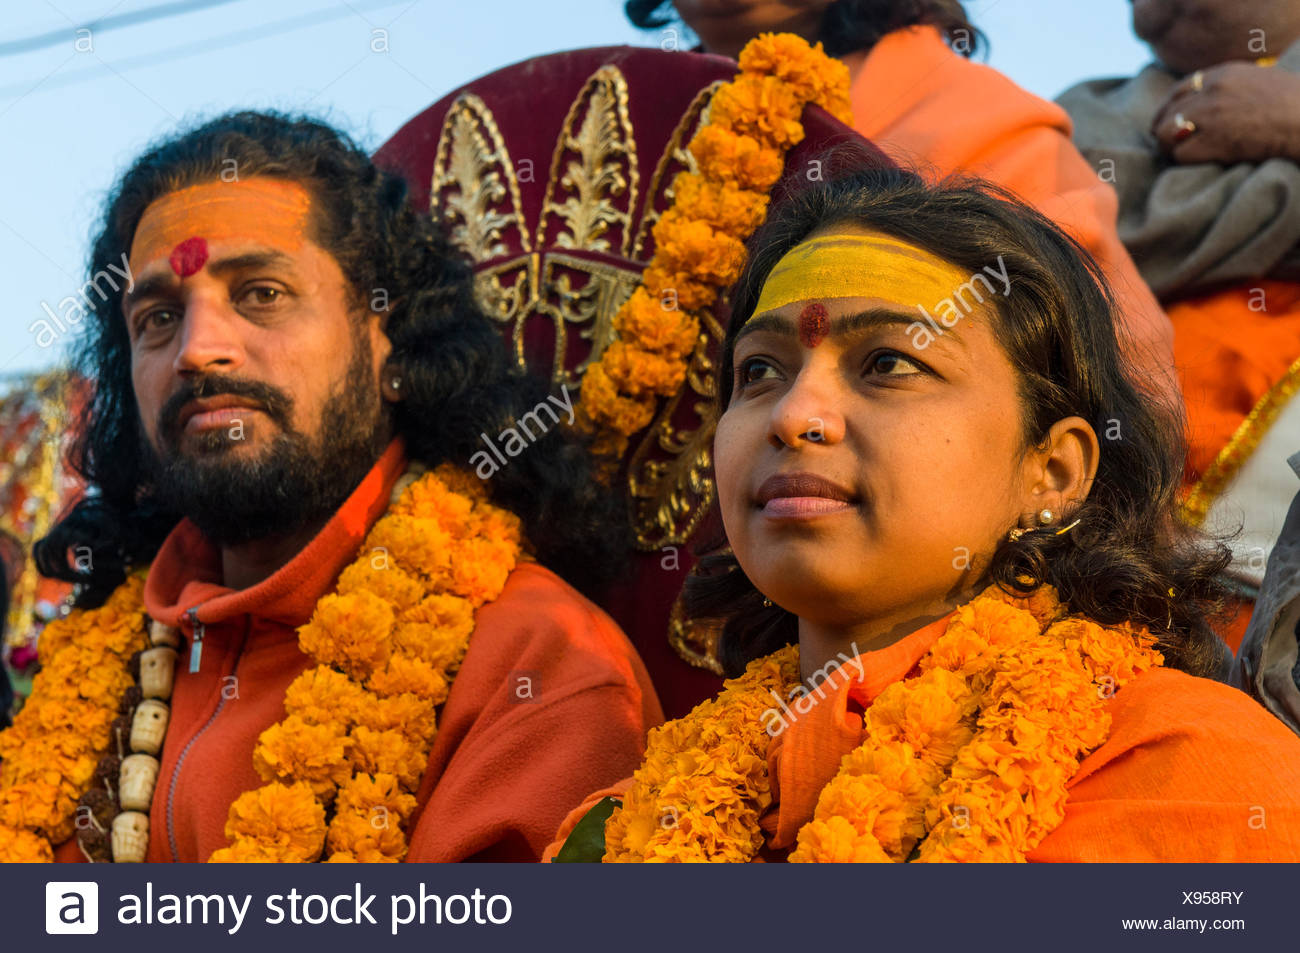 Female and male sadhu, at the procession of the Shahi Snan, the royal bath, during Kumbha Mela festival, Allahabad - Stock Image